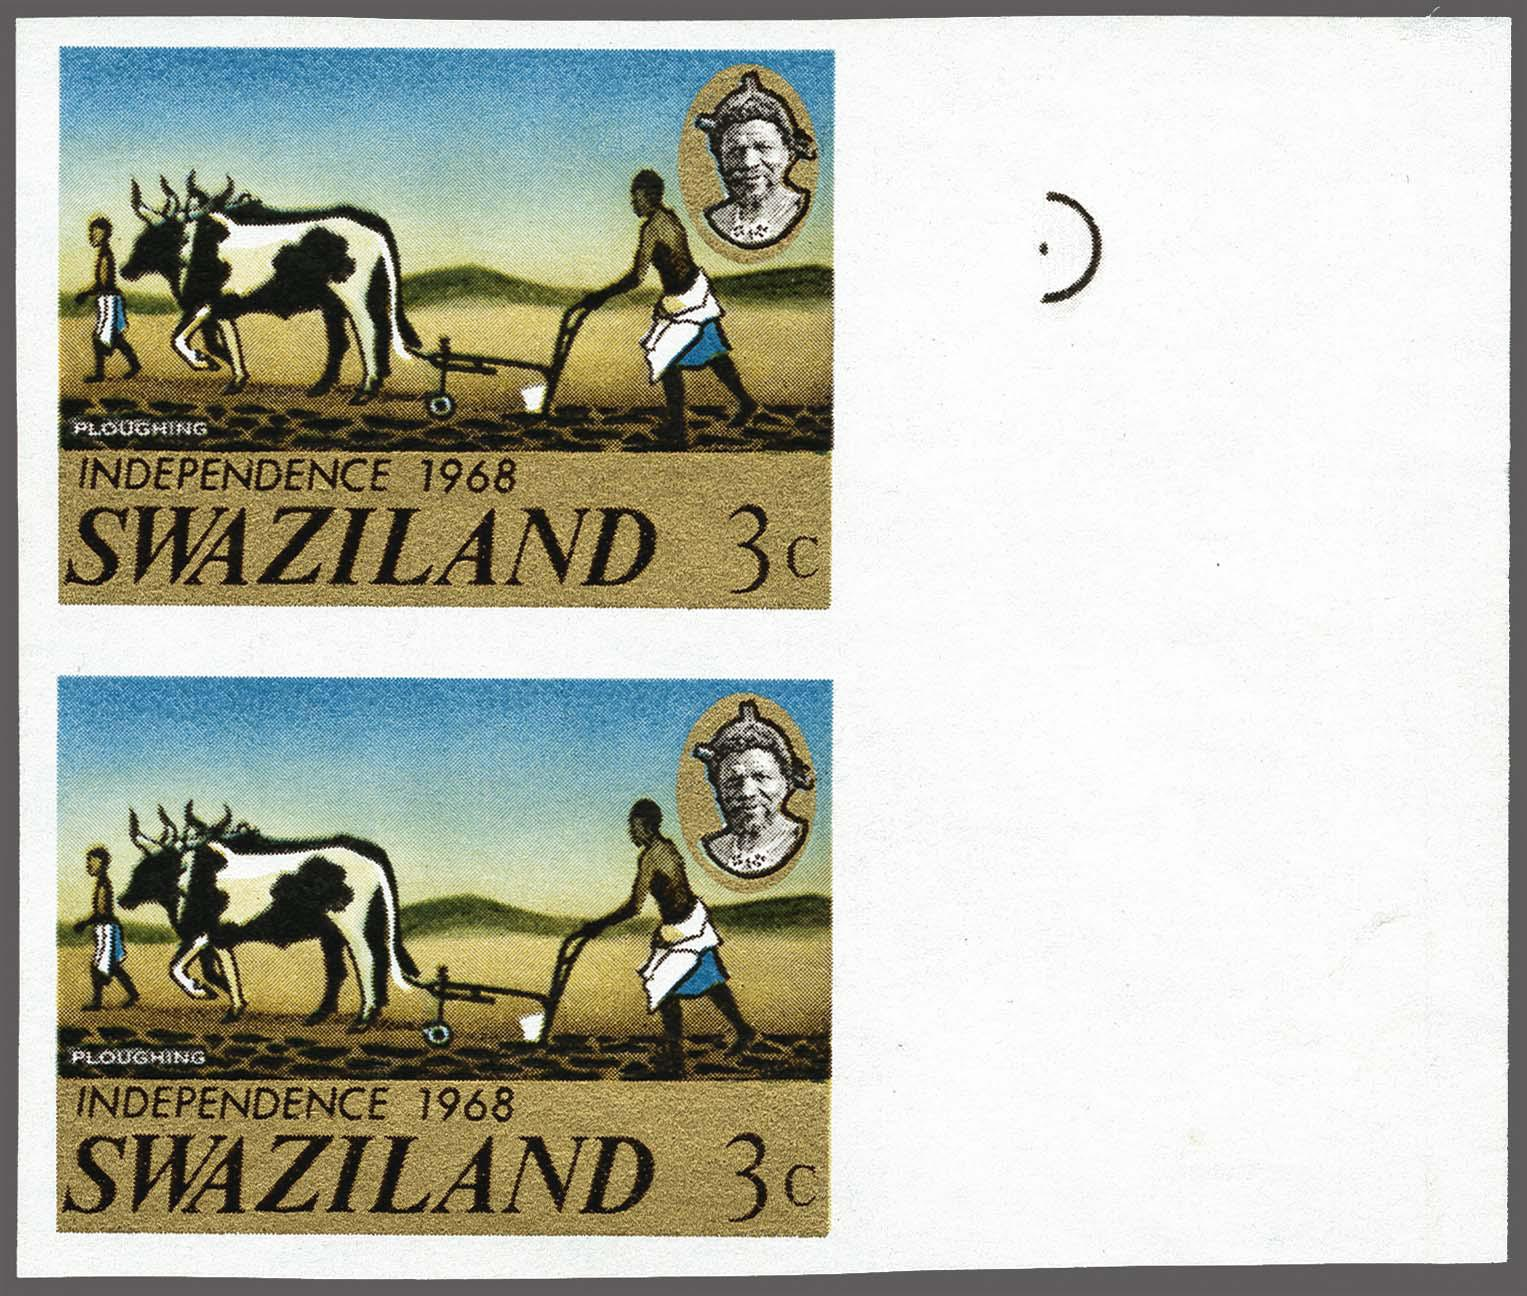 Lot 192 - Great Britain and former colonies swaziland -  Corinphila Veilingen Auction 250-253 - Day 1 - Foreign countries